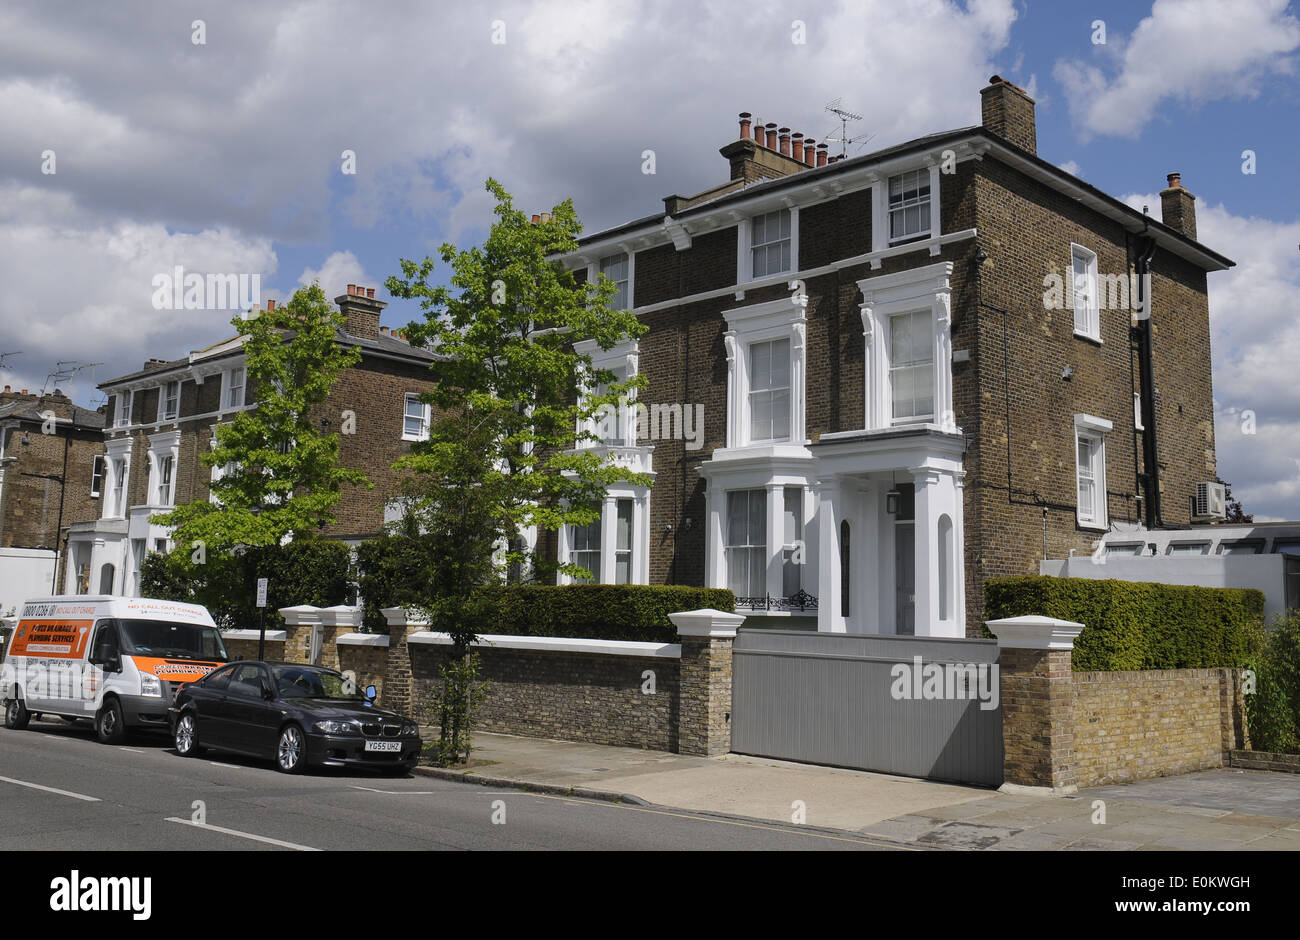 Gwyneth Paltrow Amp Chris Martins London Home In Belsize